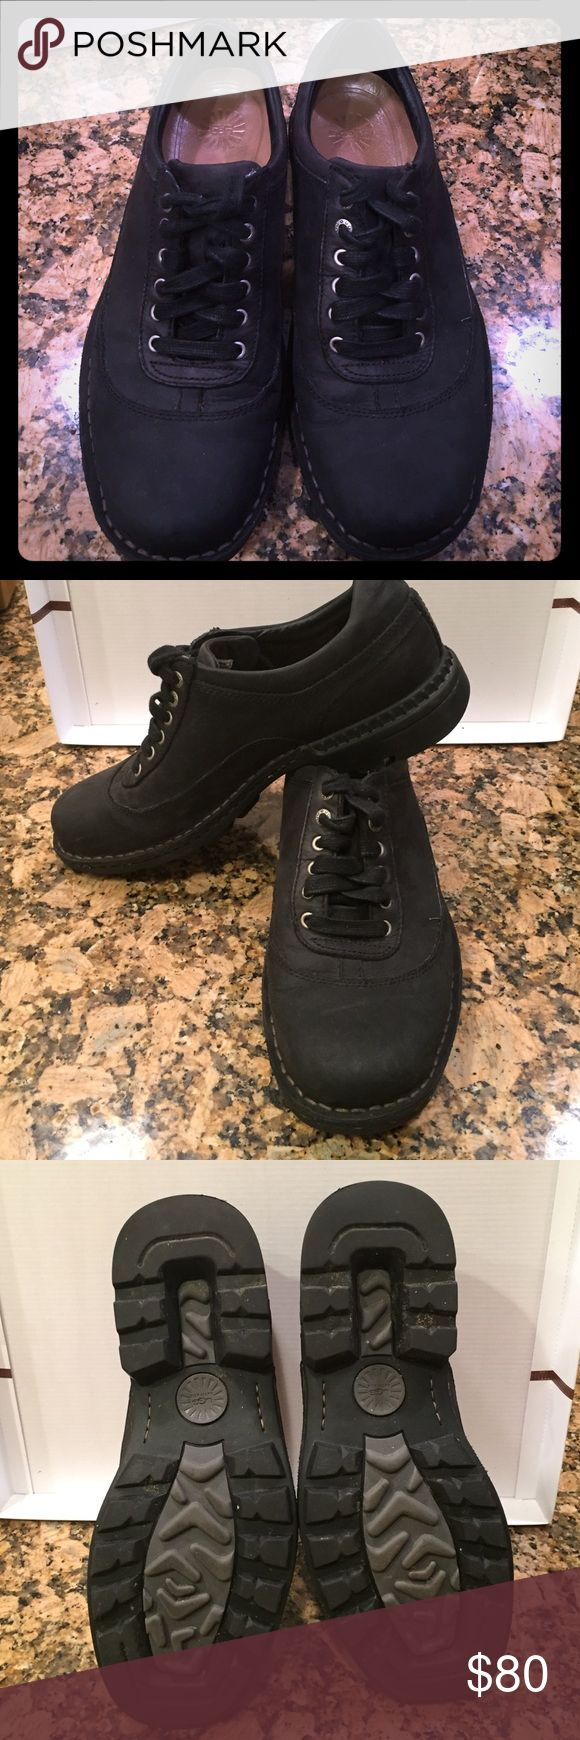 Mens 10.5 UGG shoes Great deal ! Mens UGG shoes size 10.5 black leather lace up have only been worn three times ! UGG Shoes Oxfords & Derbys